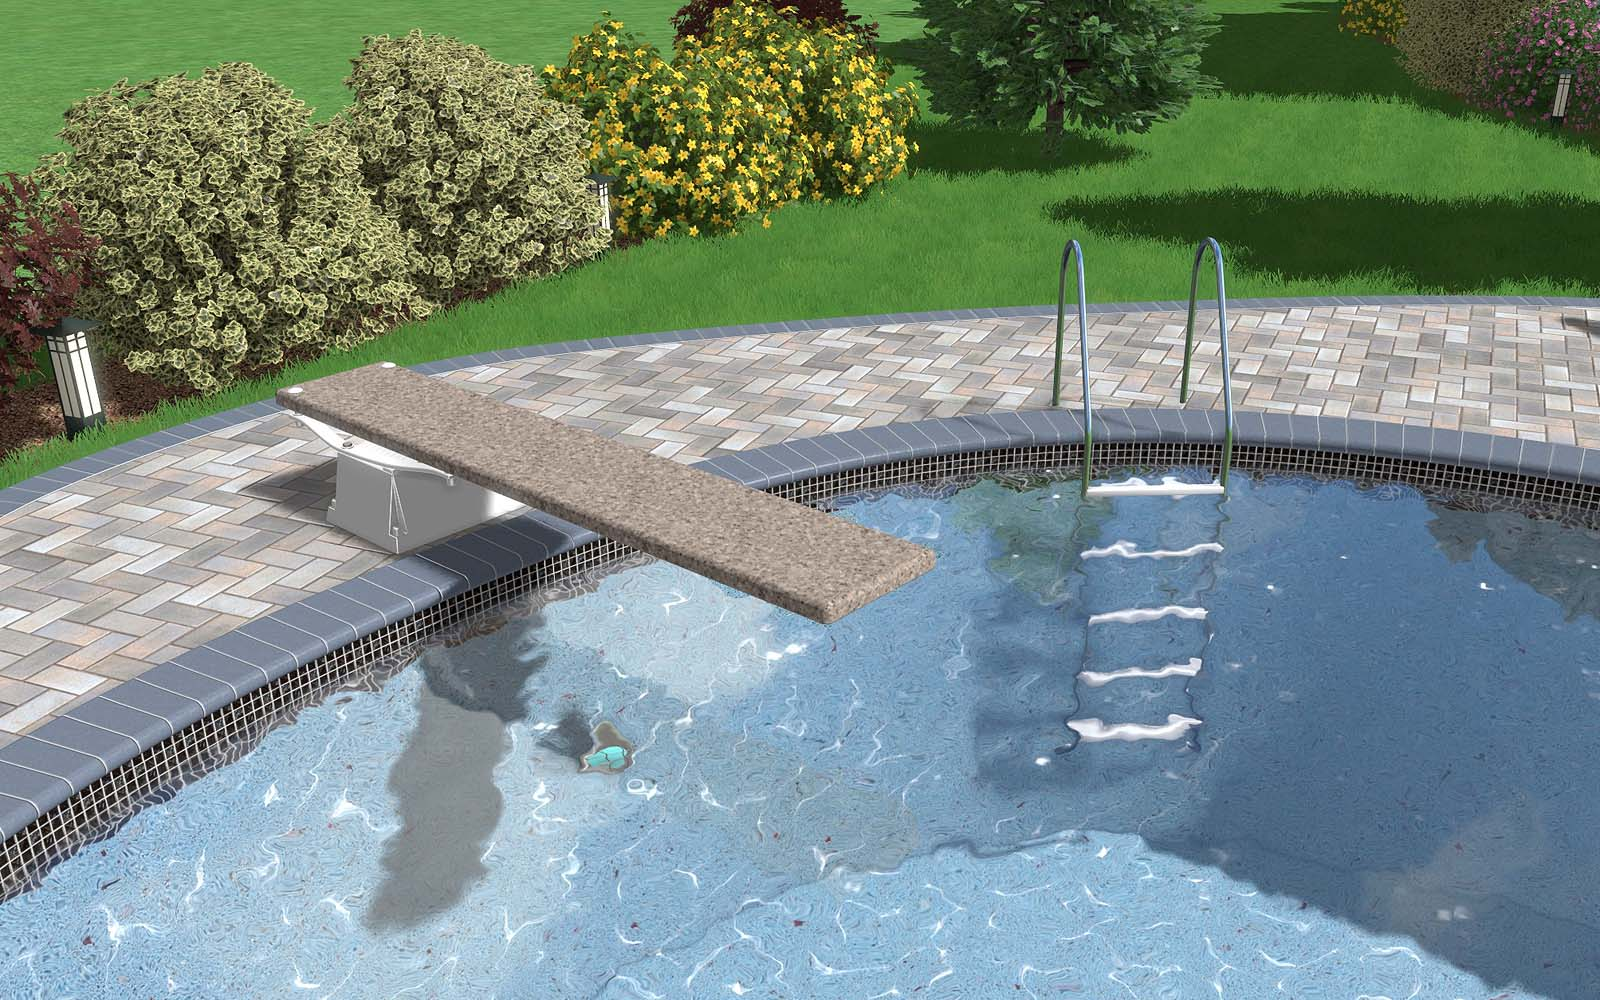 SR Smith Diving Board and Pool Ladder